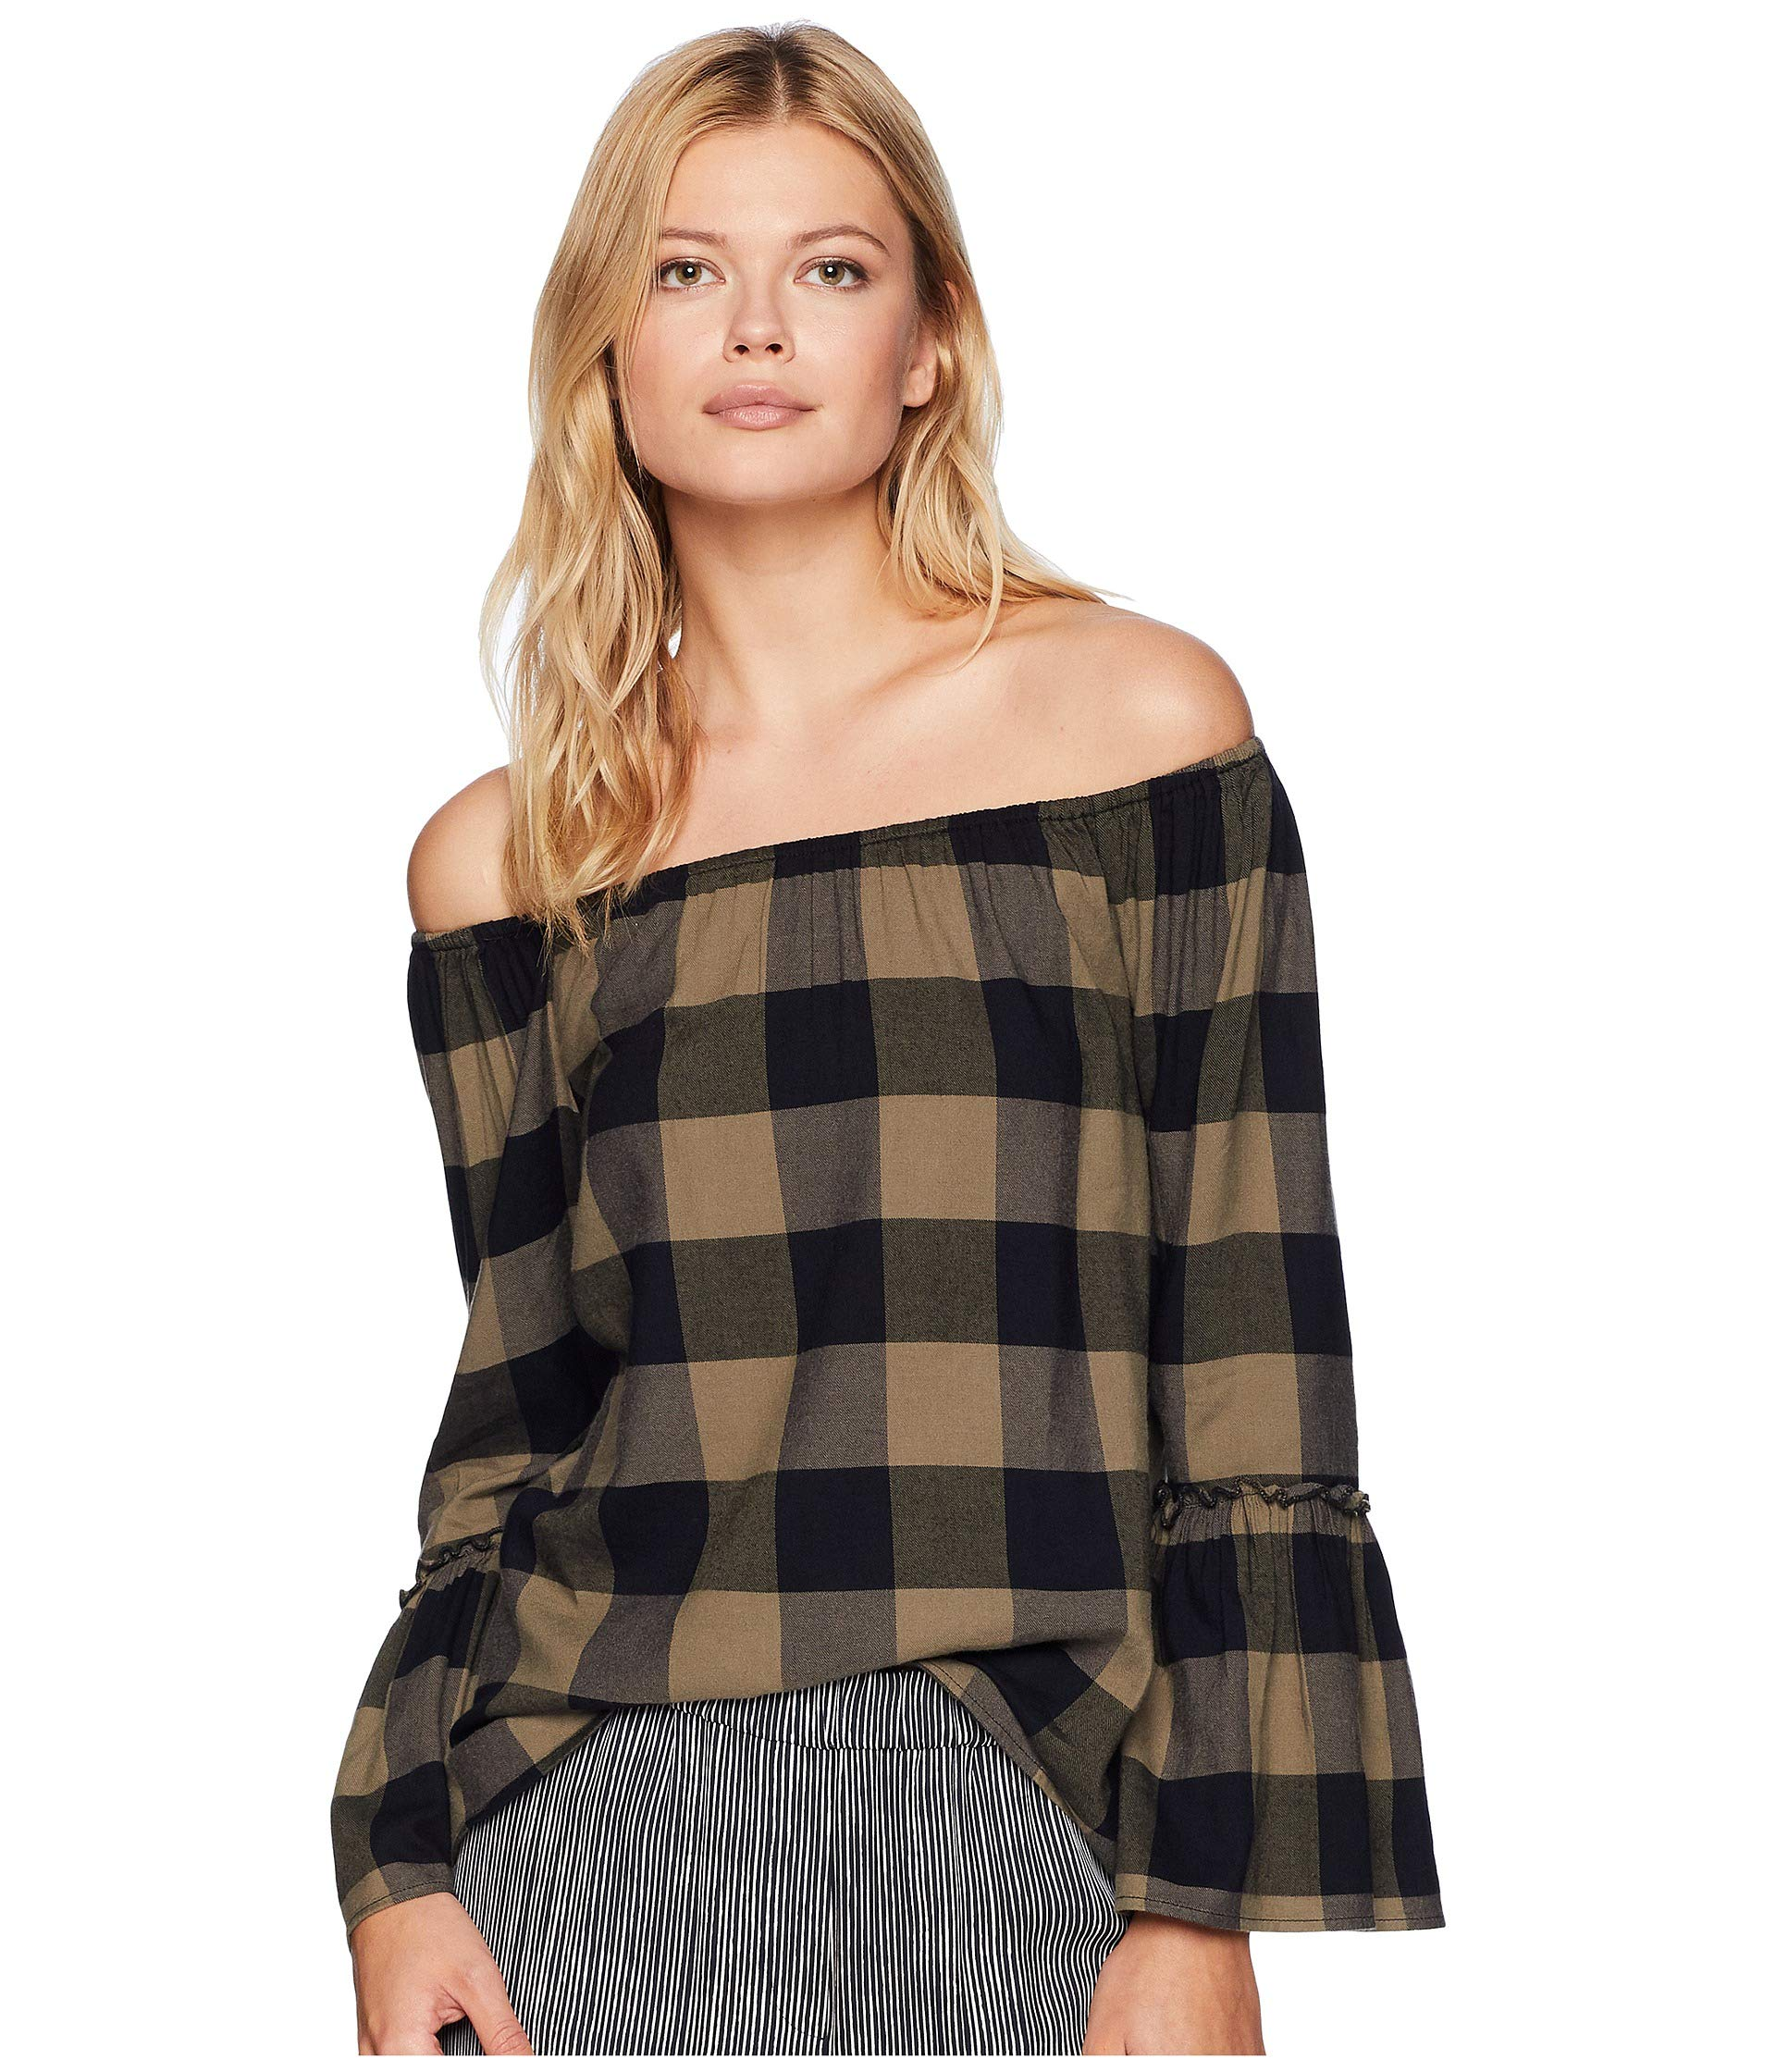 plaid in 4 design blend tribal bell soft blouse fabrication an sleeve cotton 3 allover znwq5on7